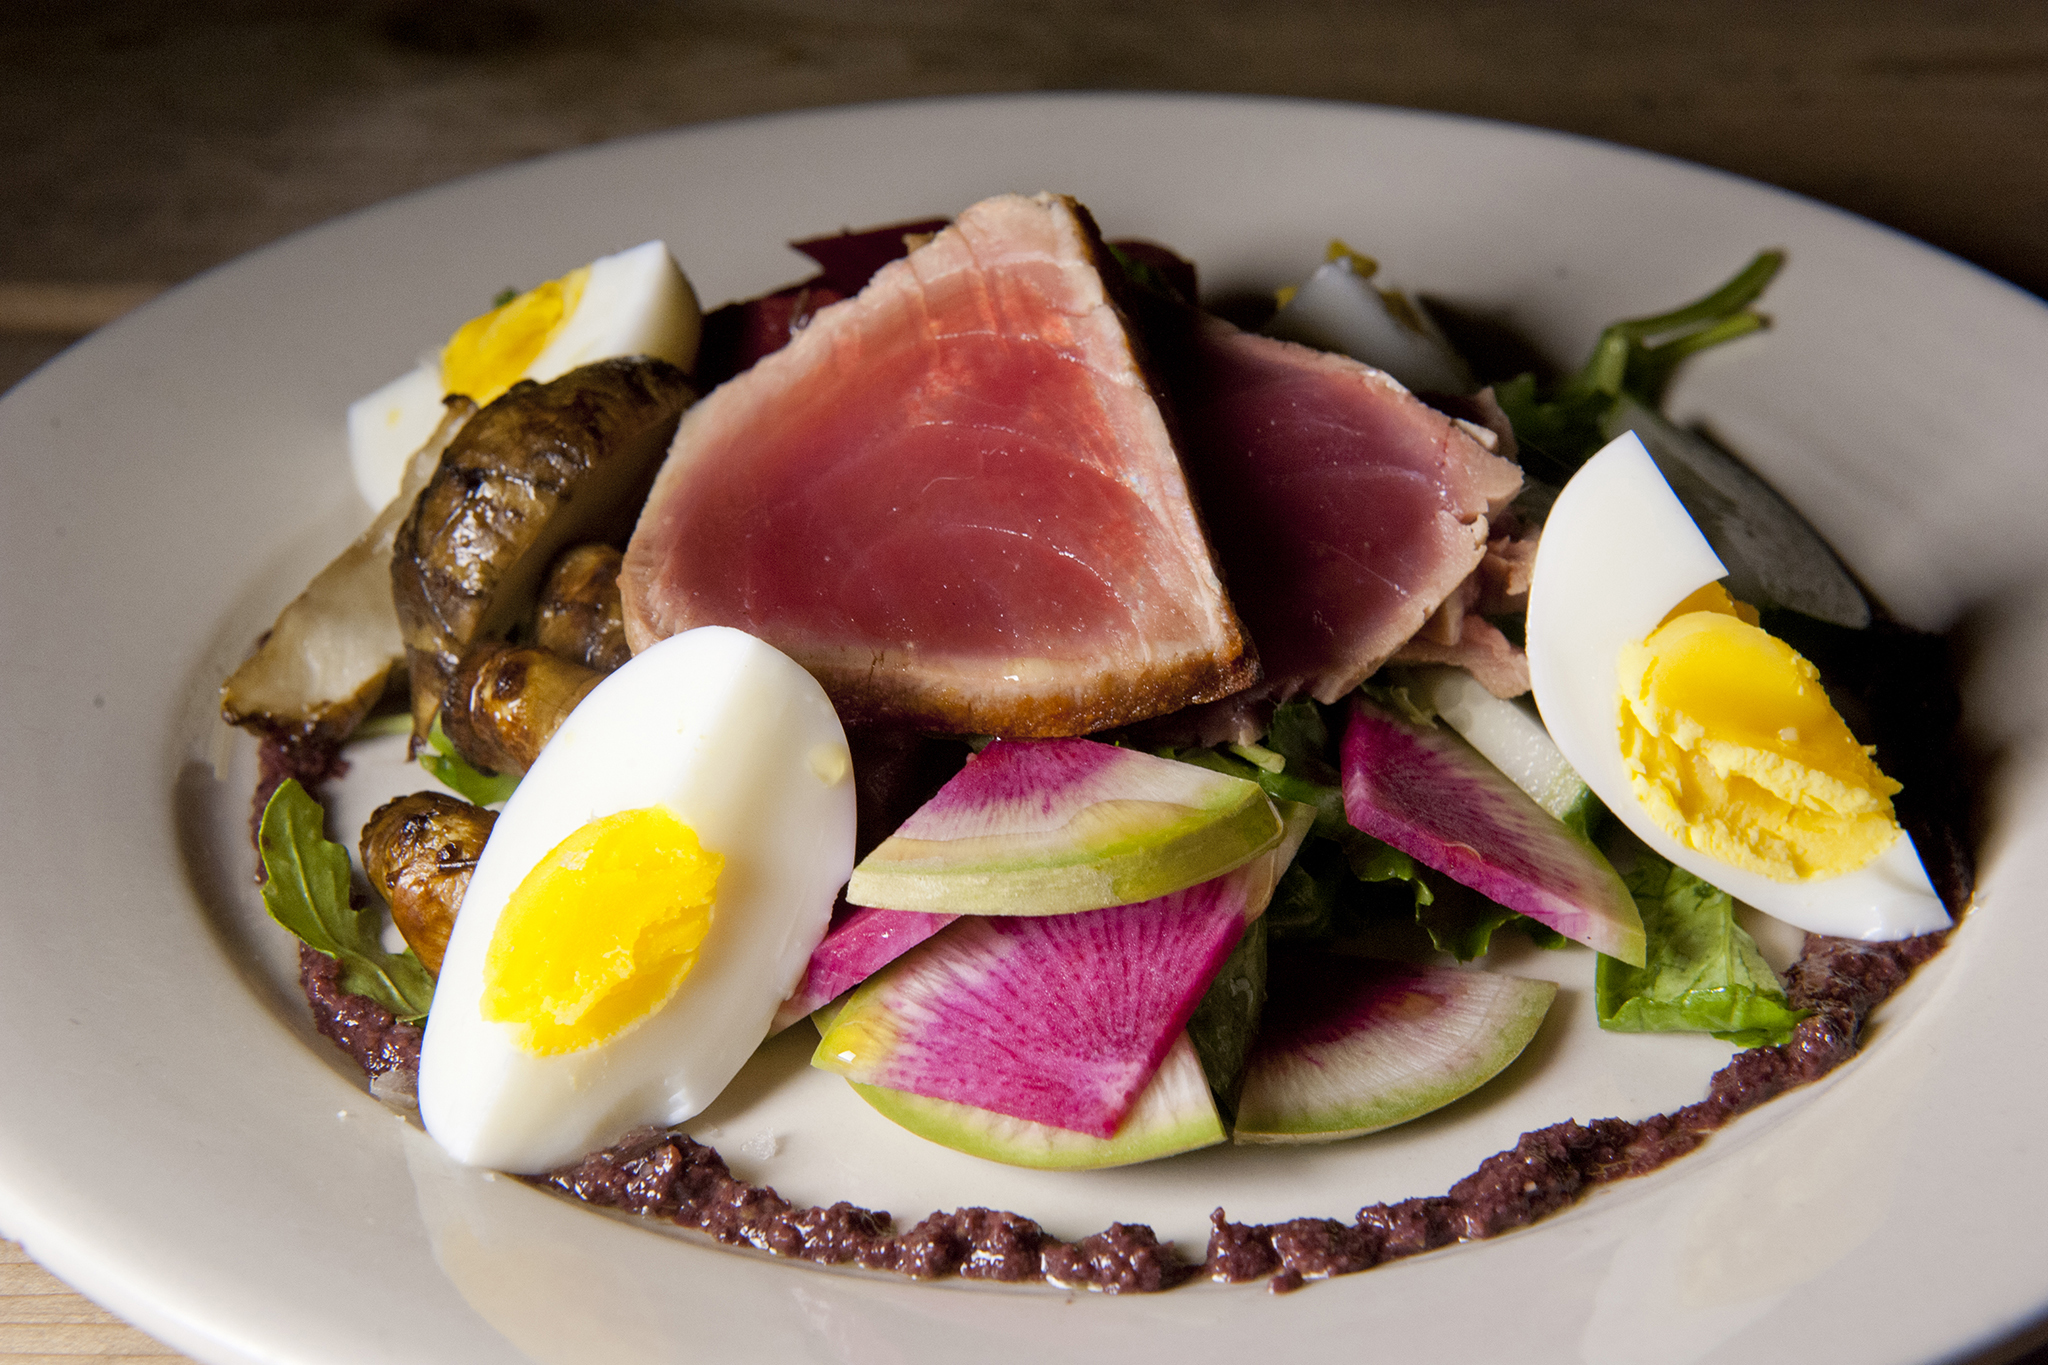 Seared tuna nicoise